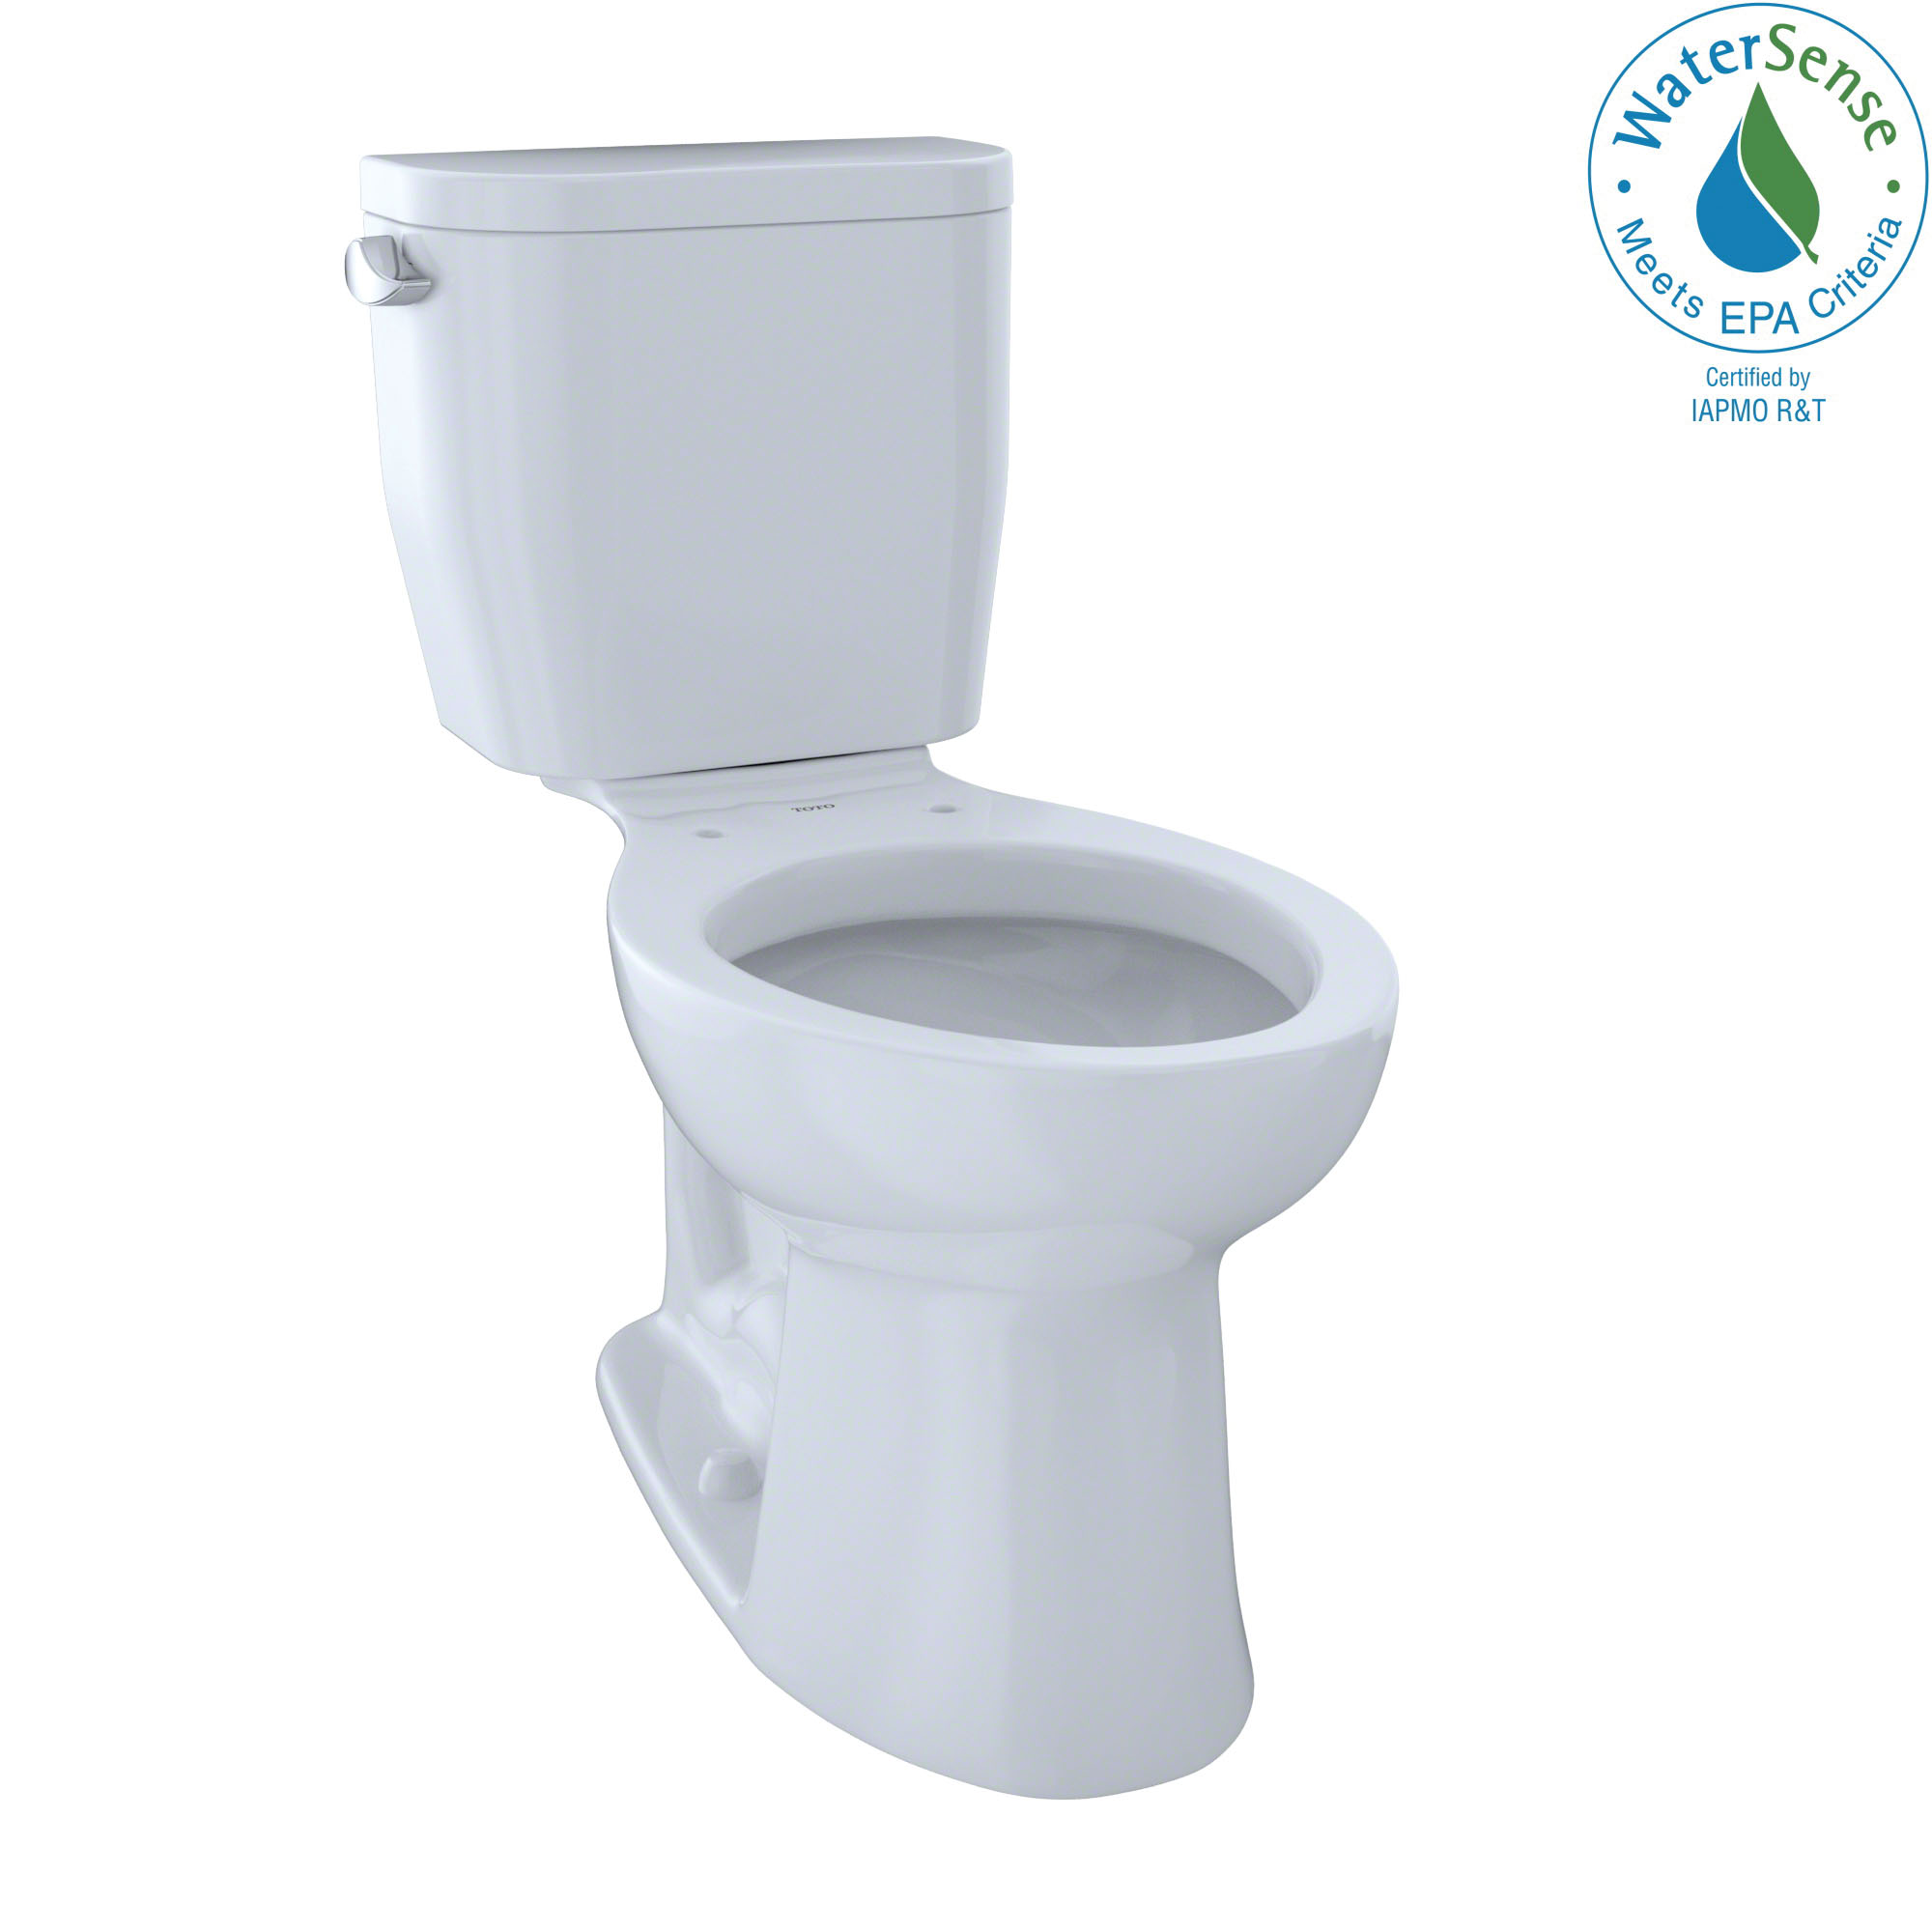 Toto® CST244EF#01 2-Piece Universal Height Close Coupled Toilet With Left-Hand Chrome Trip Lever, Entrada™, Elongated Bowl, 12 in Rough-In, 1.28 gpf, Cotton White, Import,Includes Church Toilet Seat